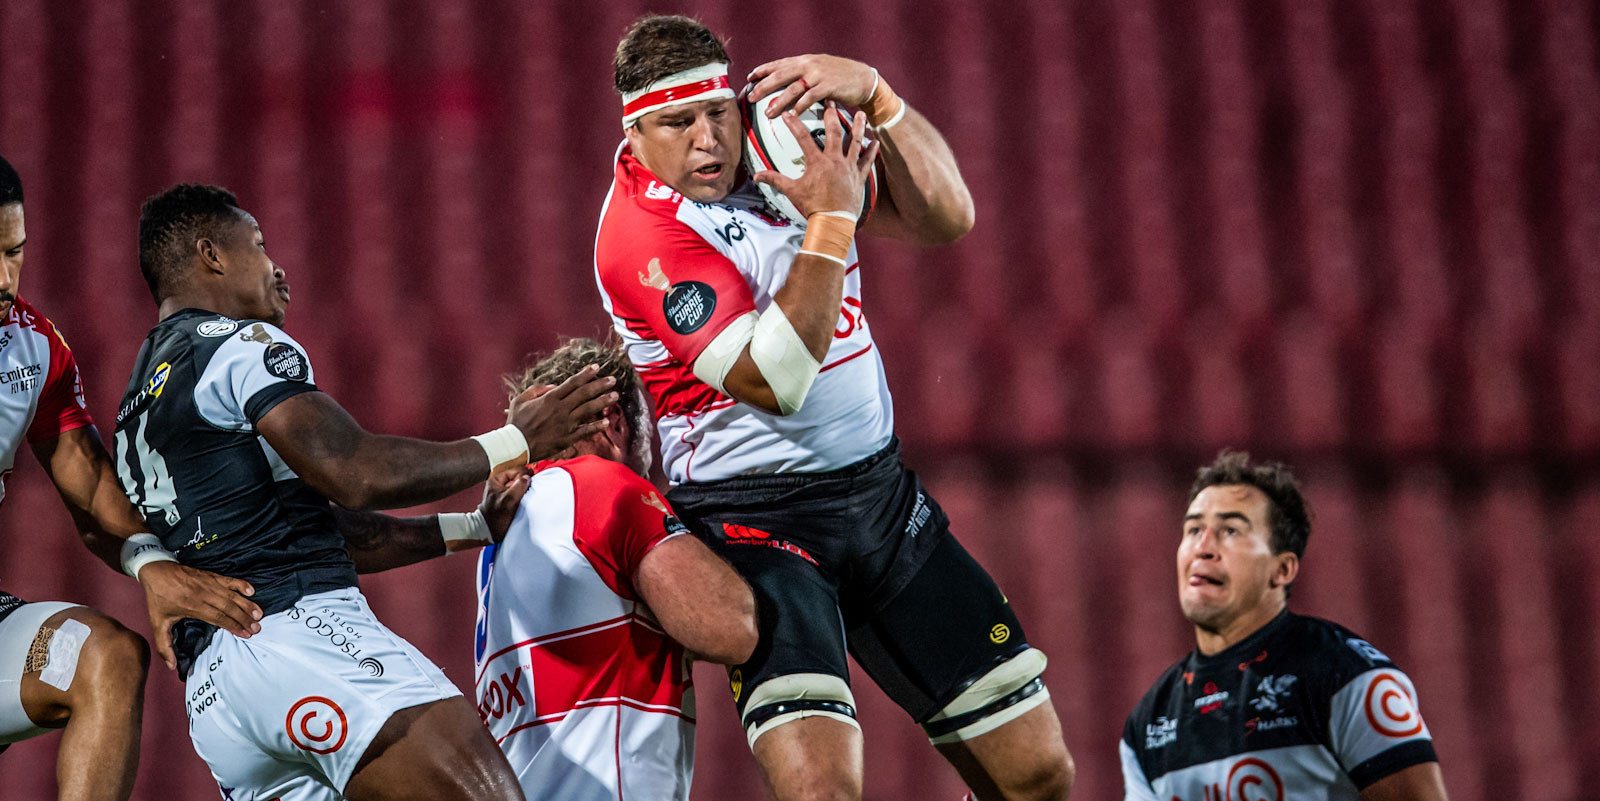 Willem Alberts was Man of the Match on the back of a strong defensive effort